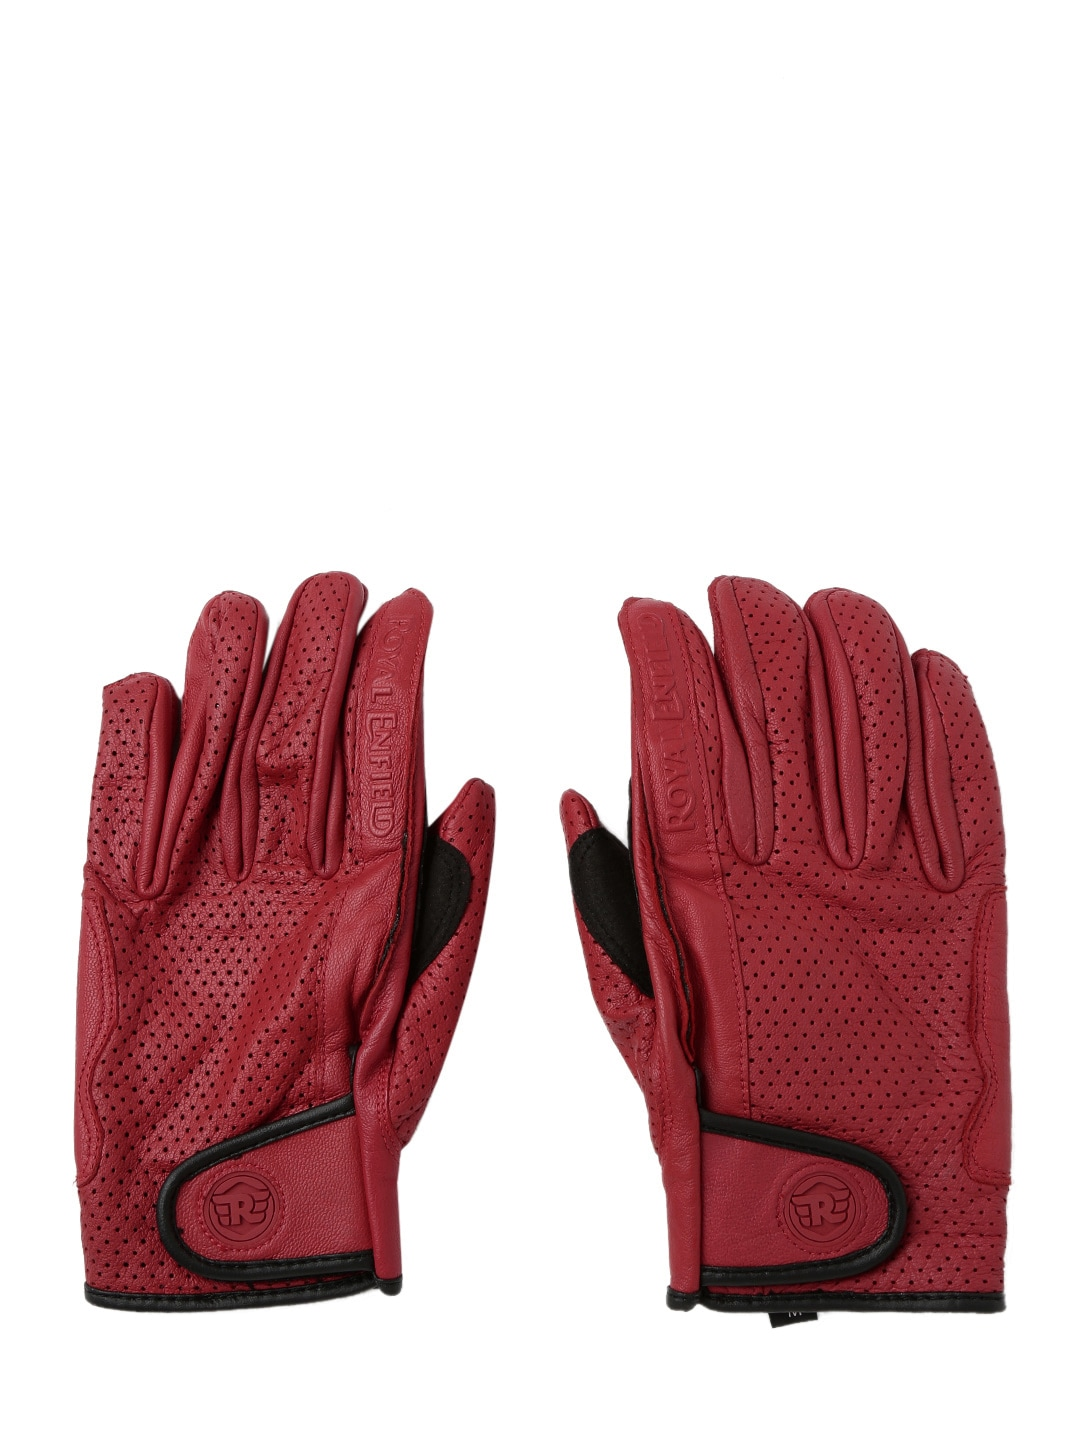 Buy leather hand gloves online india - Buy Leather Hand Gloves Online India 28